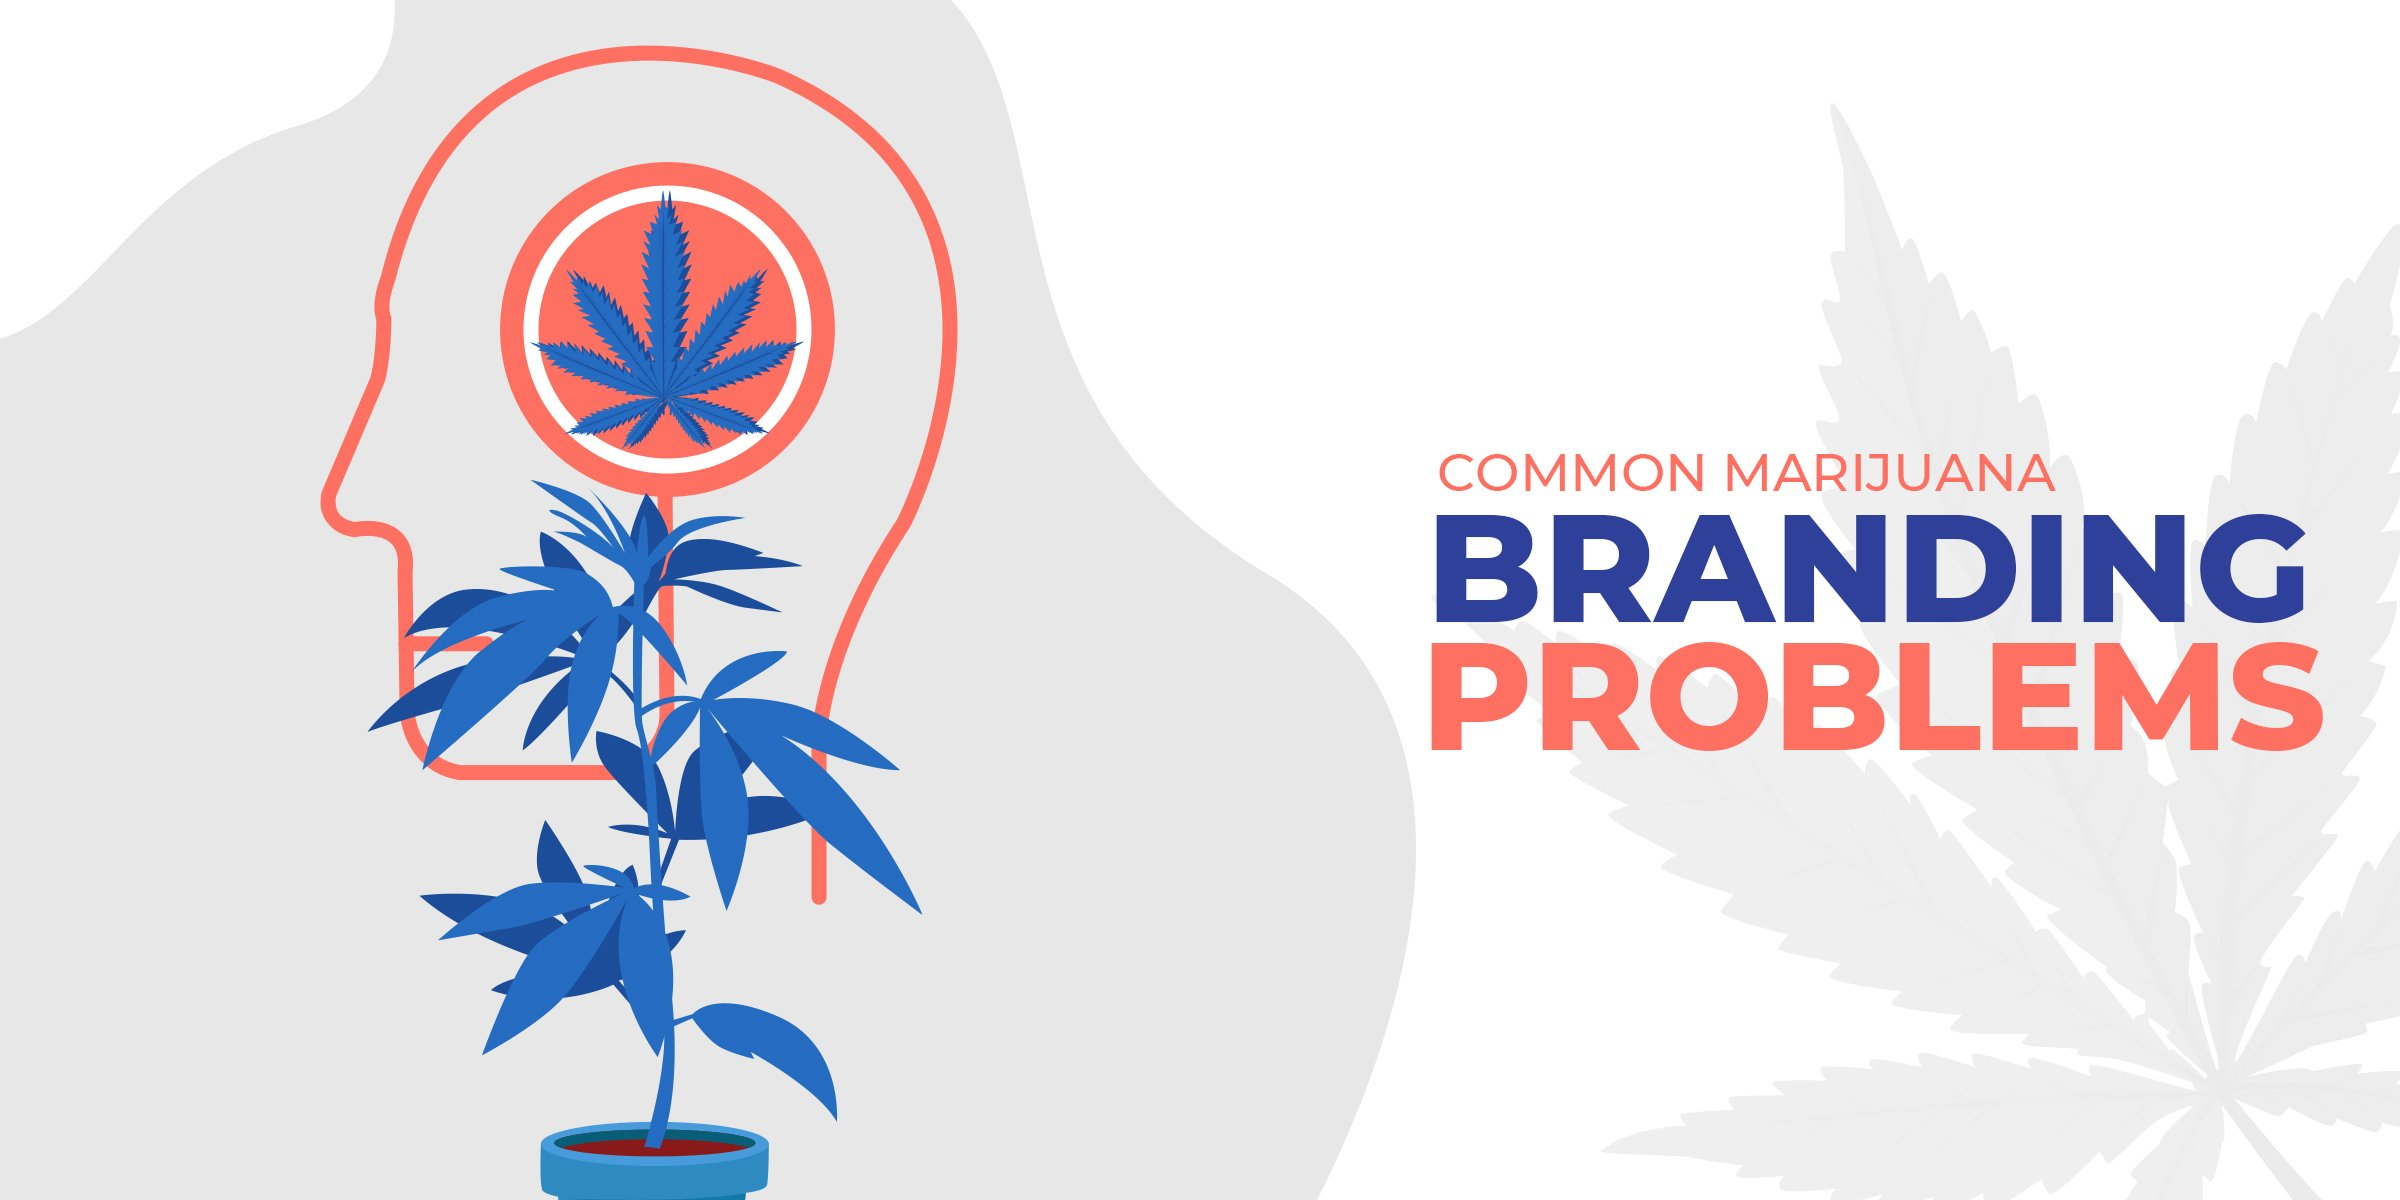 Common Marijuana Branding Problems